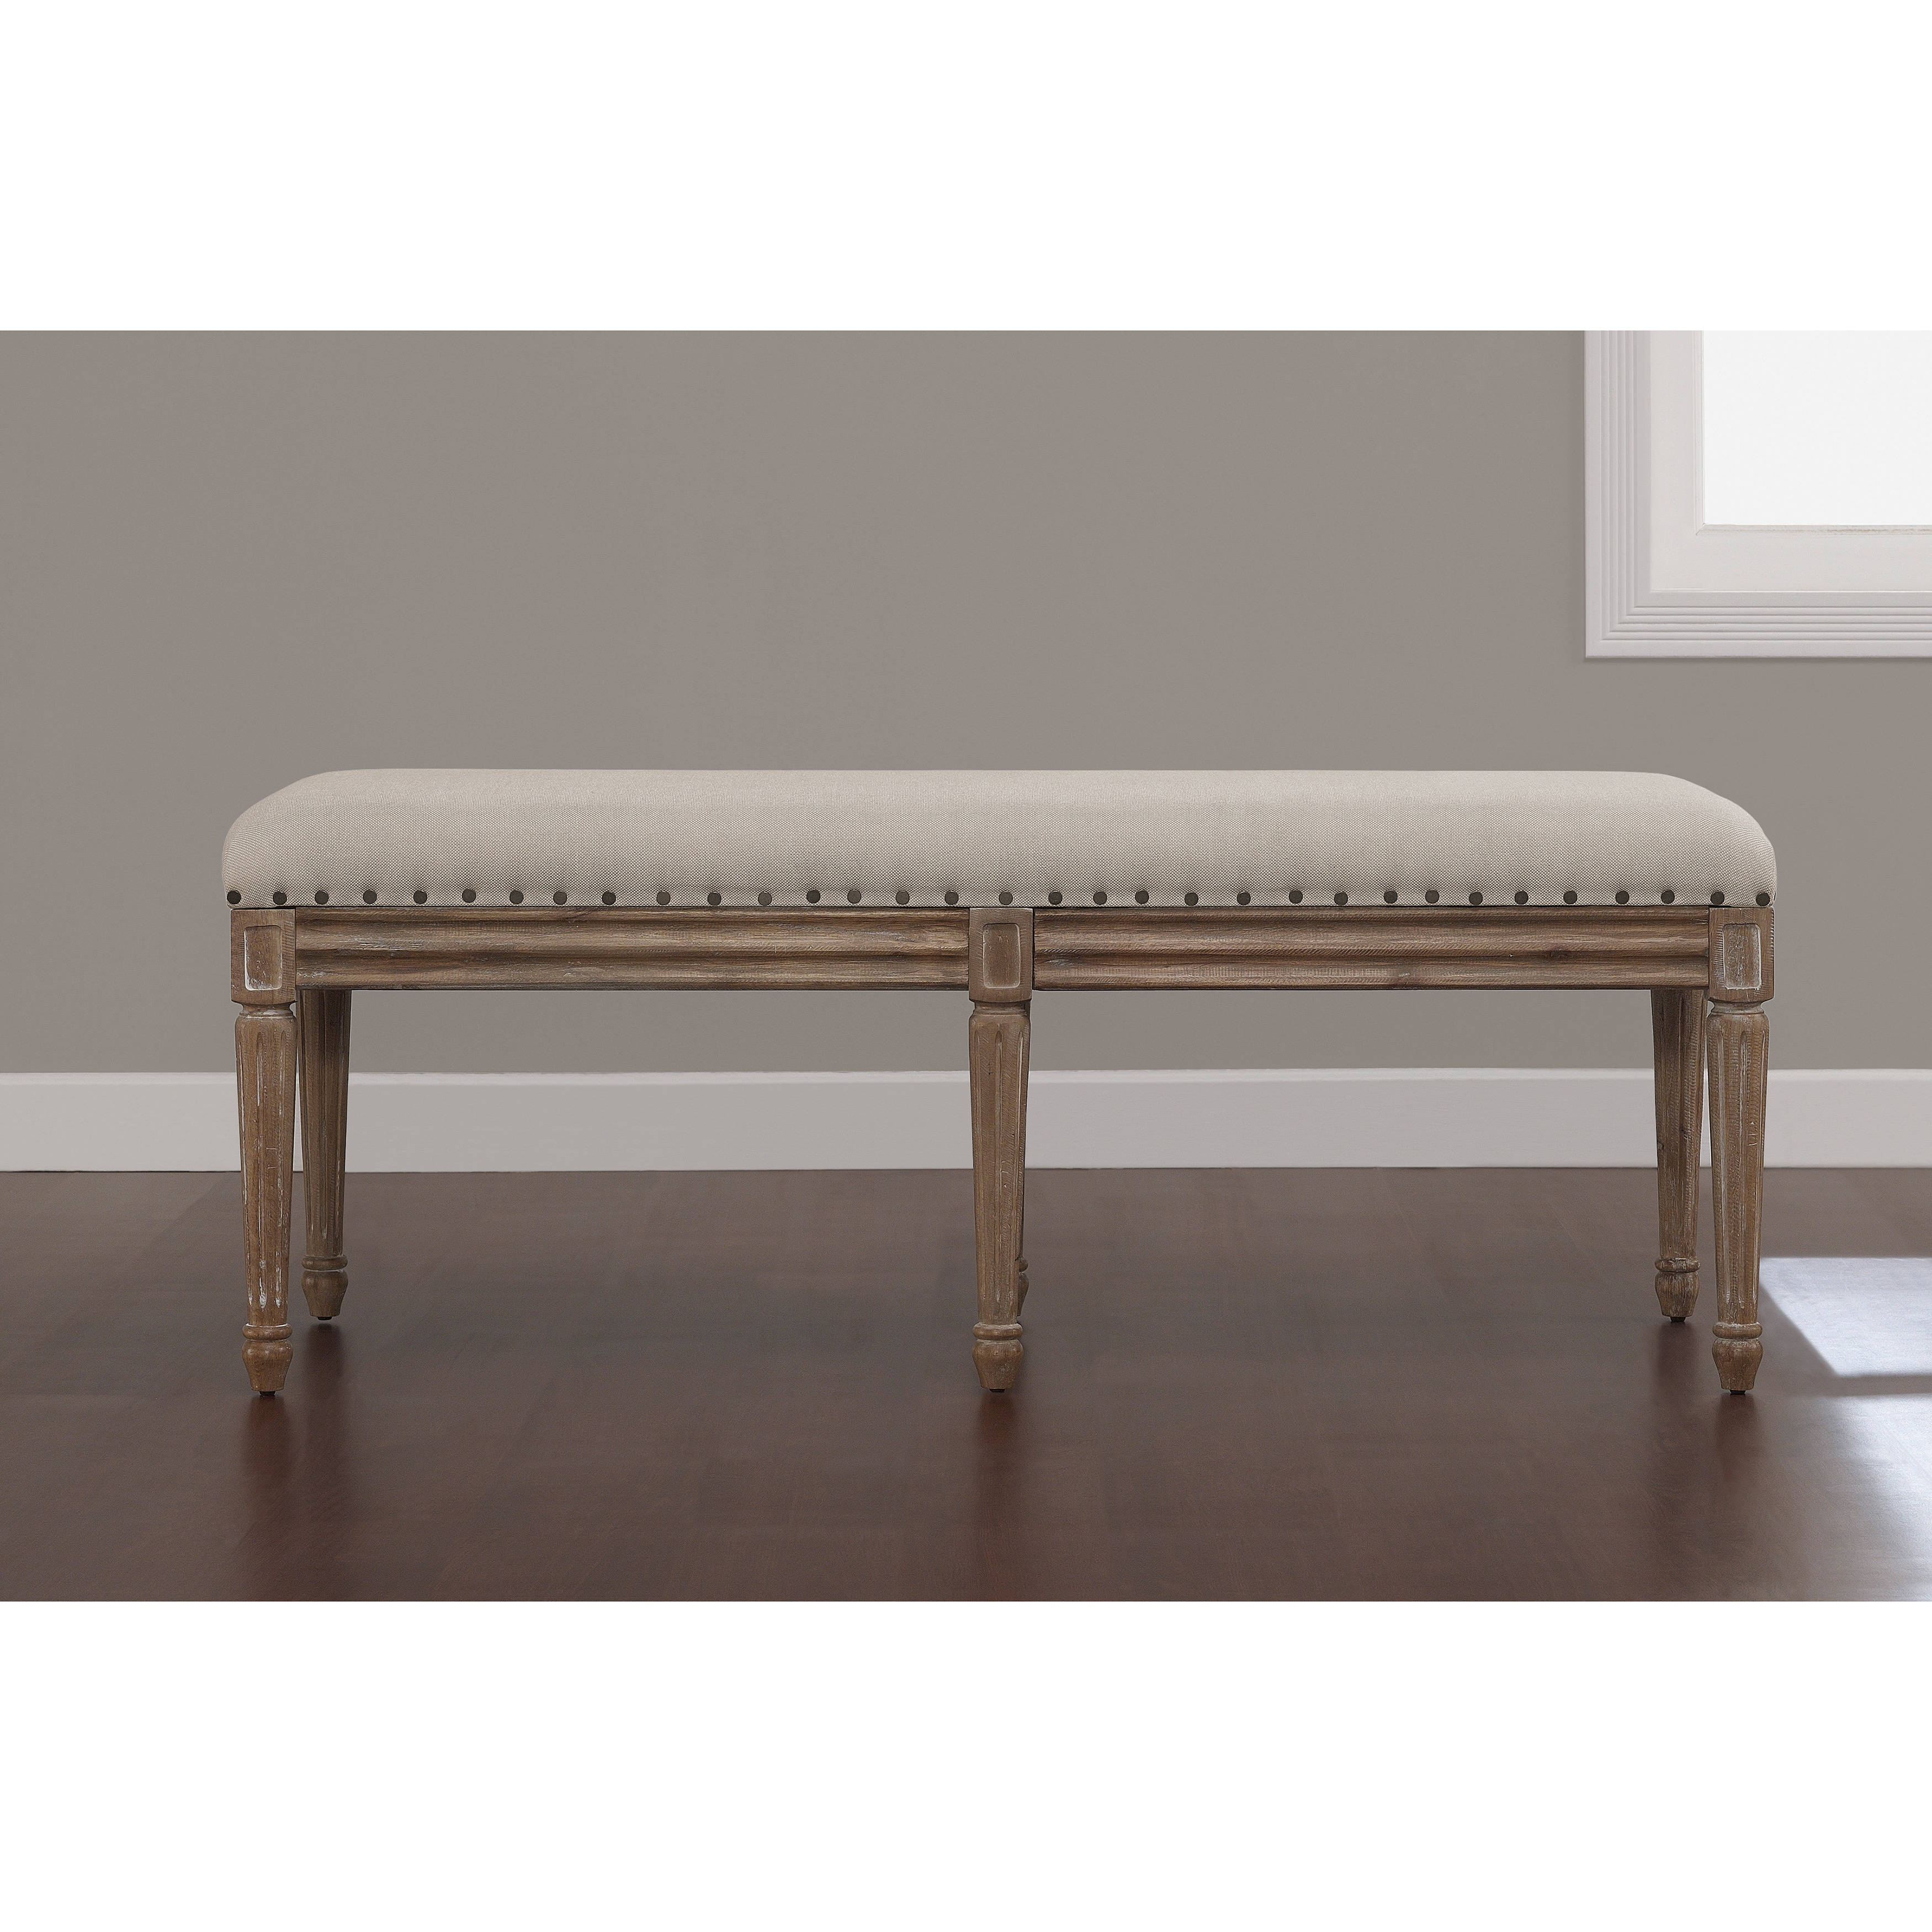 Upholstered Dining Benches Dining Room Ideas